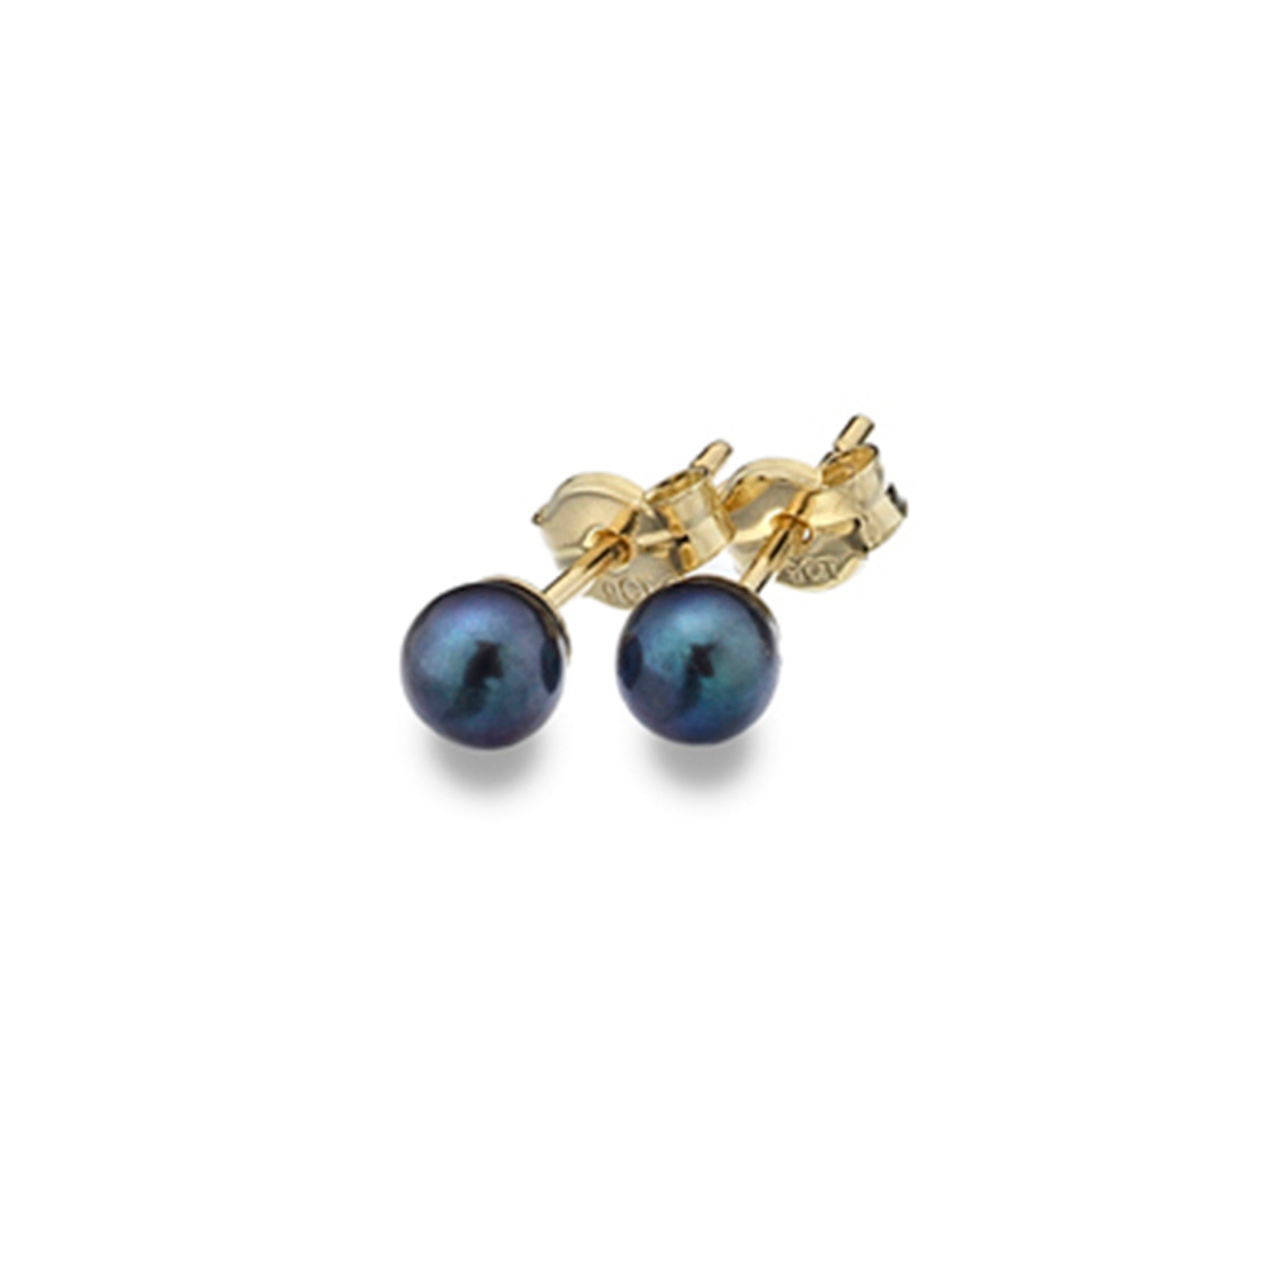 853fc13ba 9ct Yellow Gold 4mm Black Freshwater Cultured Pearl Stud Earrings ...